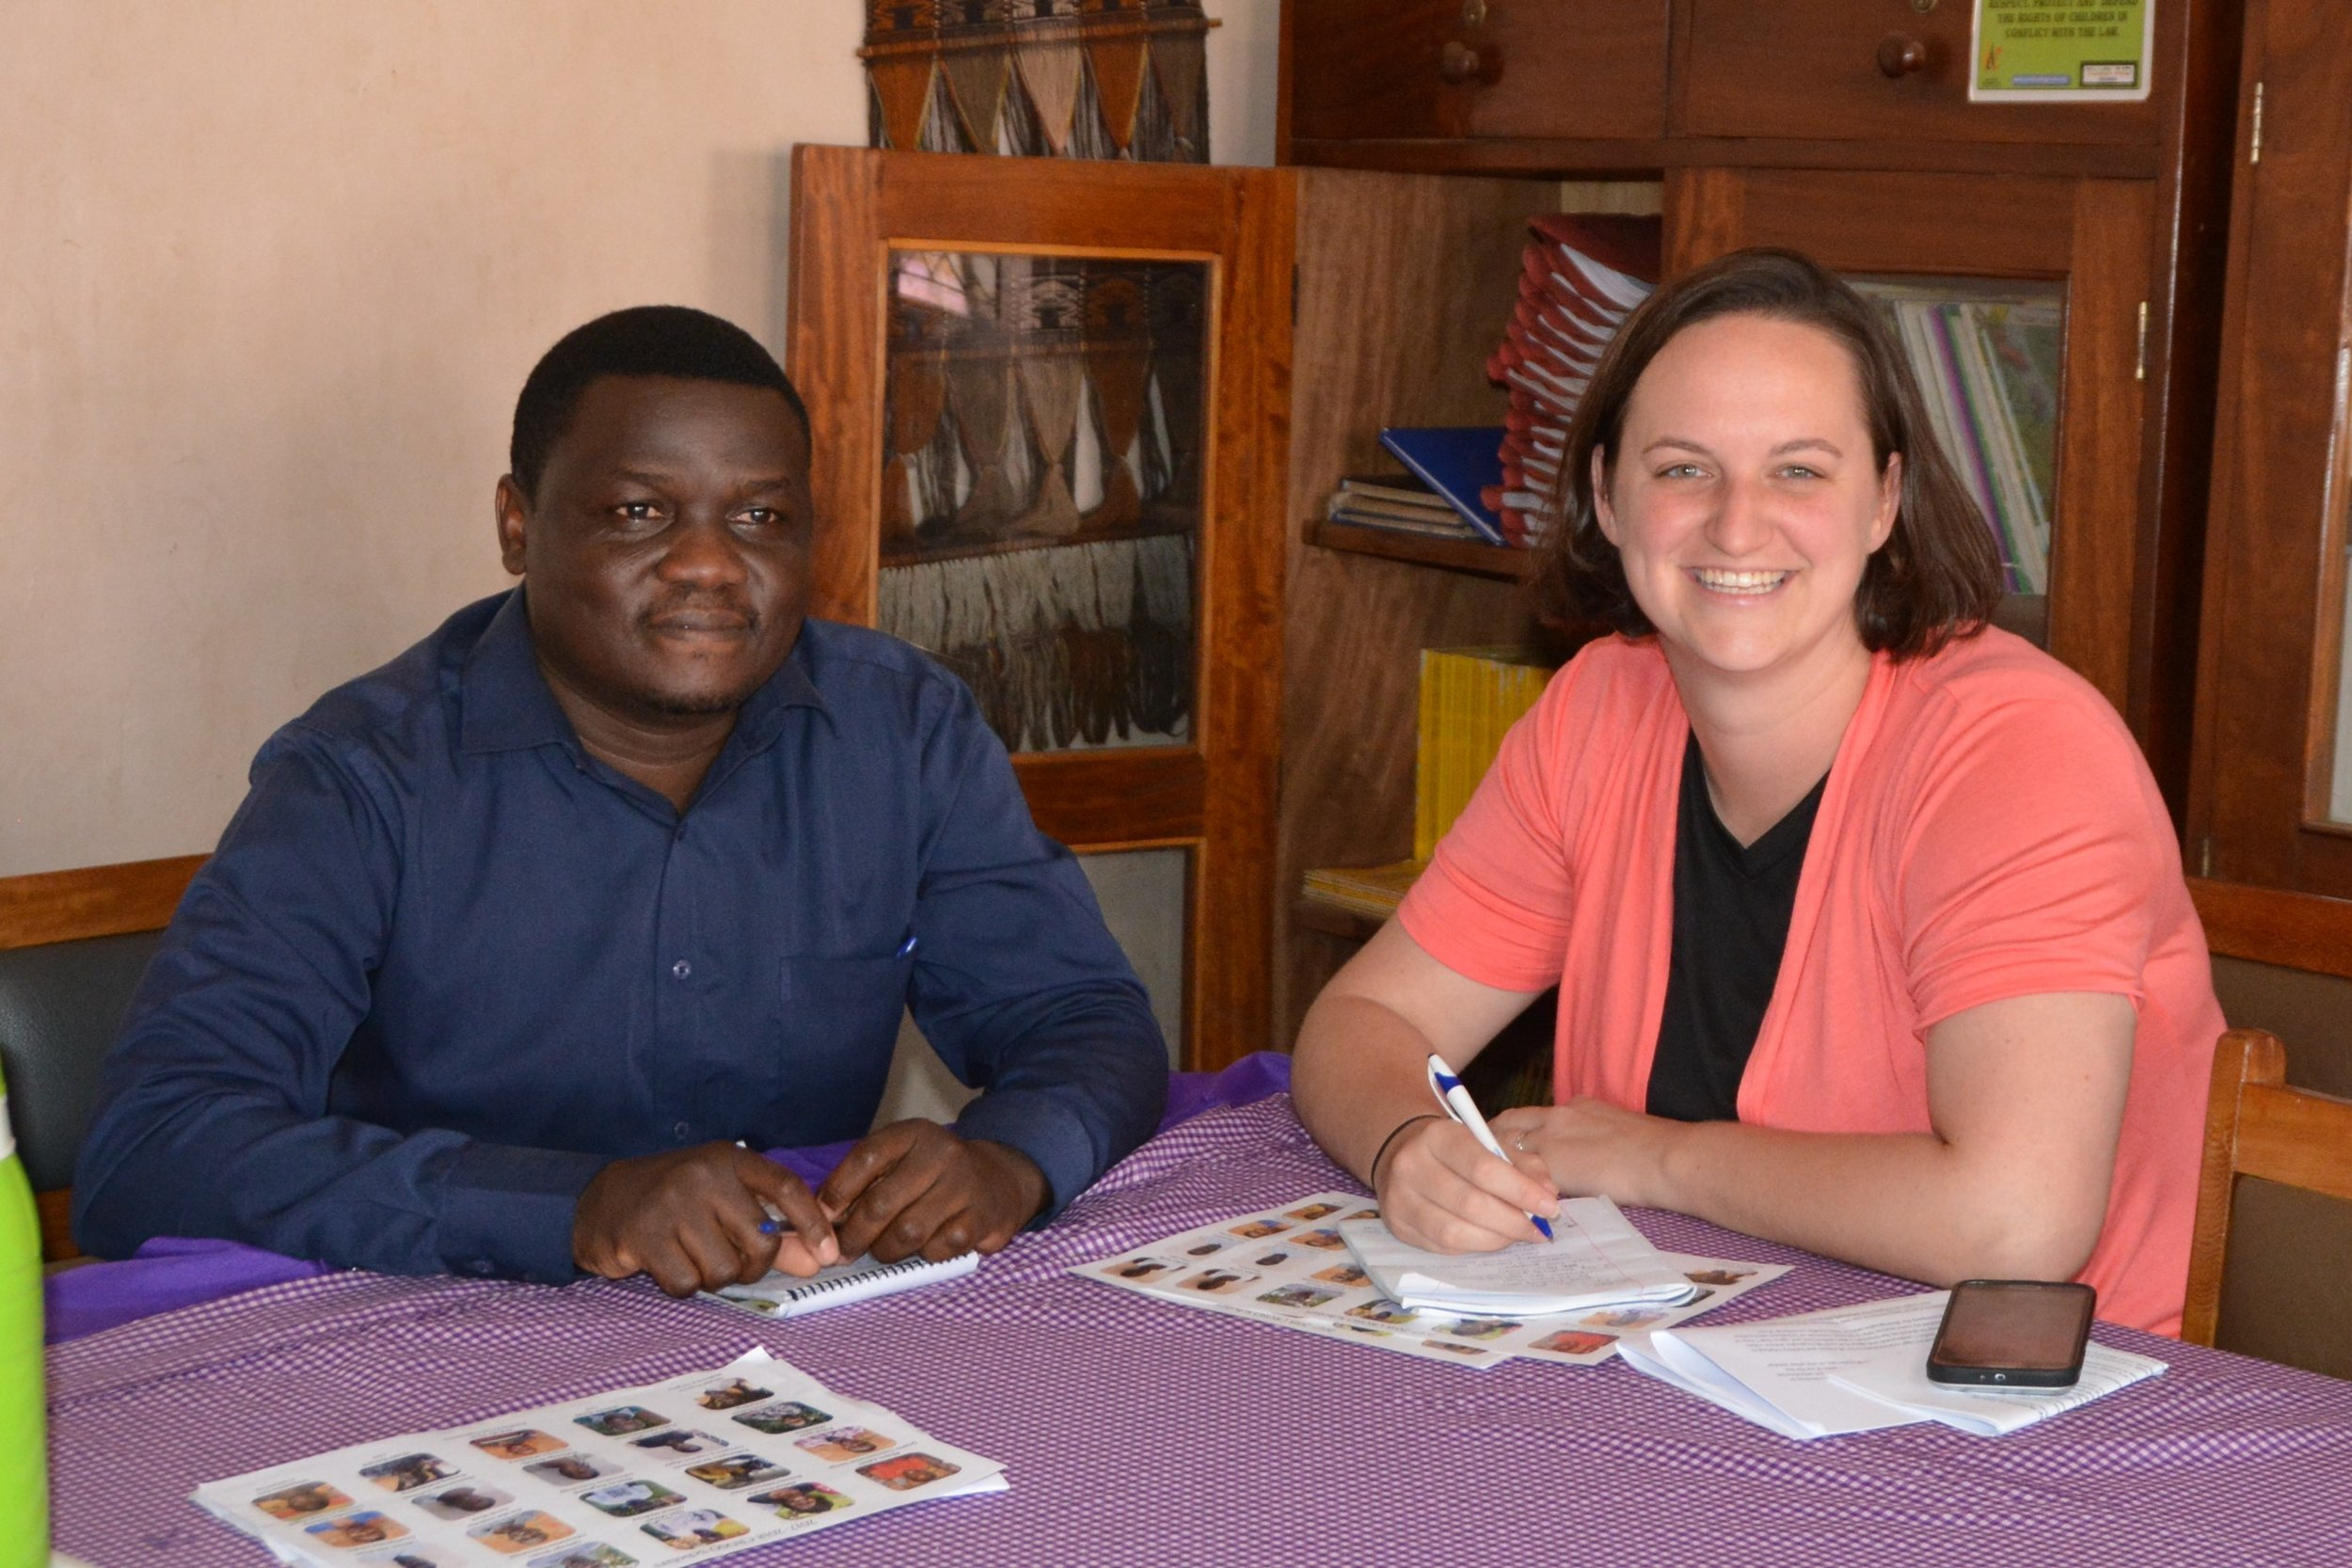 Bwayo Moses (C.R.O. Program Manager in Mbale) and Molly MacCready (CROSO Executive Director) meeting in November 2017.